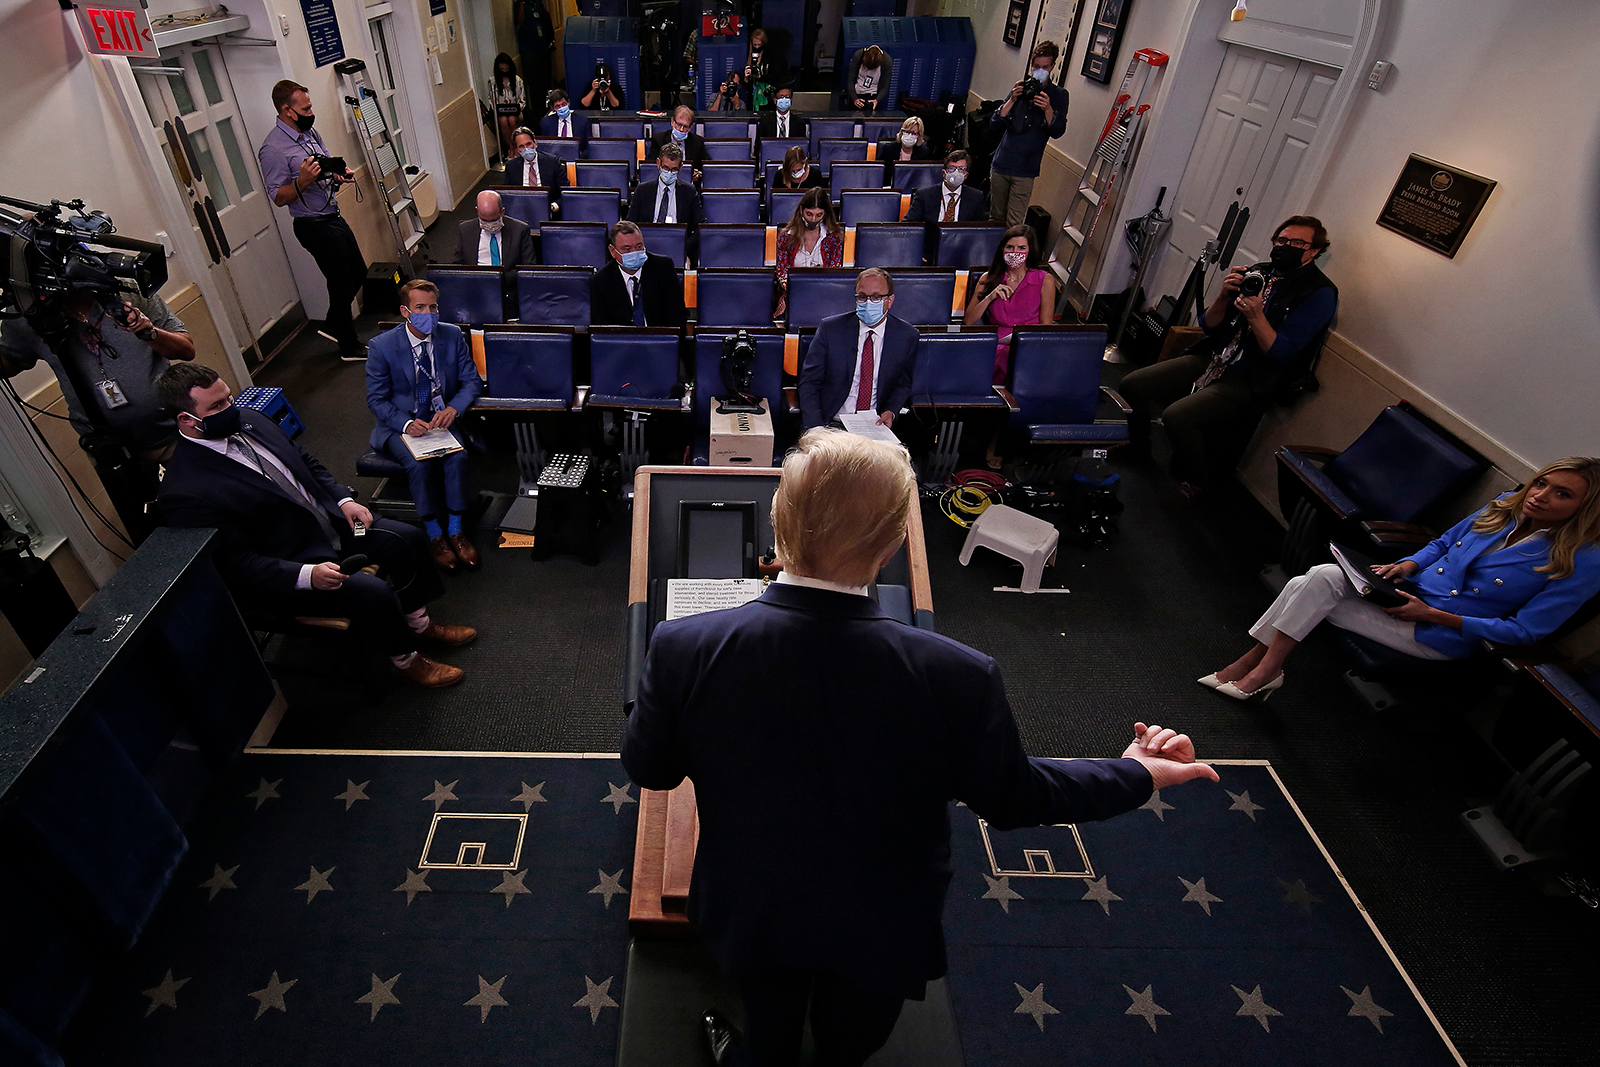 President Donald Trump talks to journalists during a news conference in at the White House in Washington, DC on July 22.